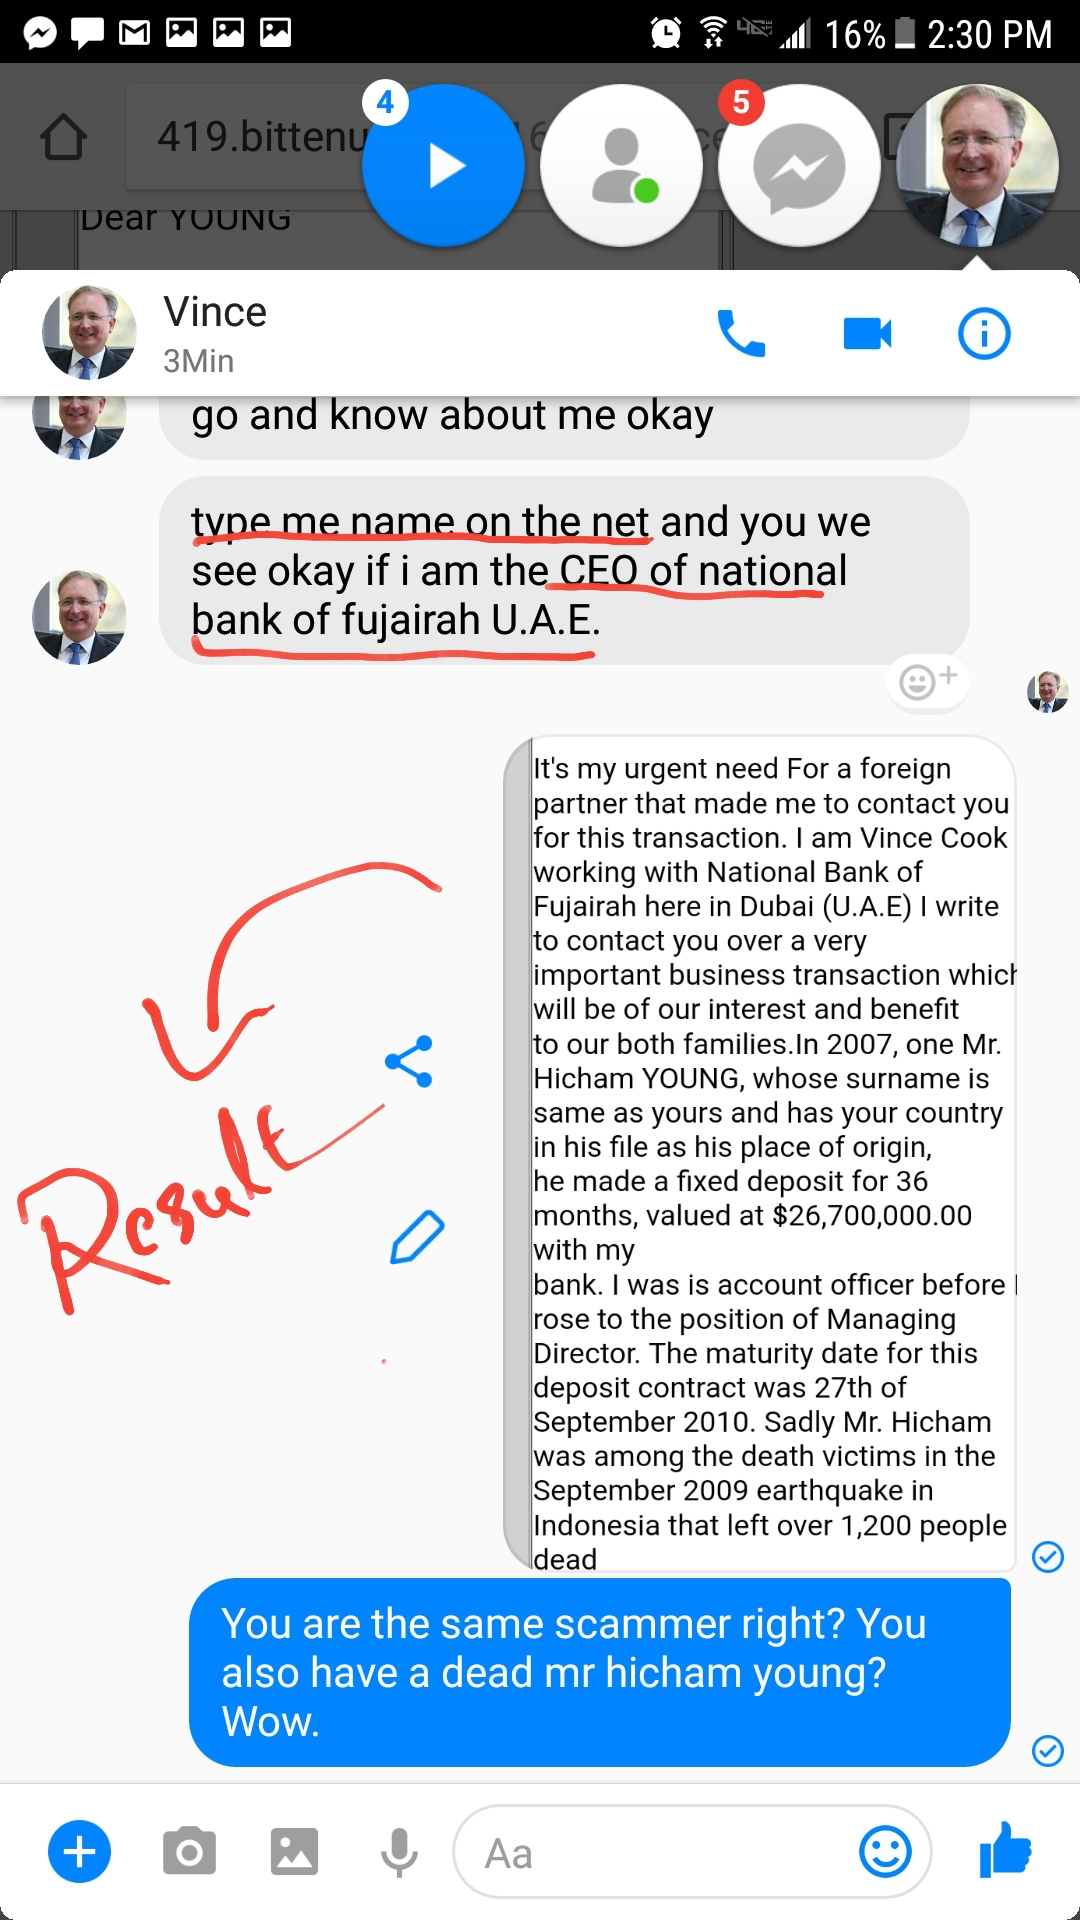 As a last resort he want to prove using Google Search that he was the Real Ban Manager of National Bank of Fujairah. But sent him a screen shot of what Google returned for his name. Ha ha ha and he shut up and disappeared for good.